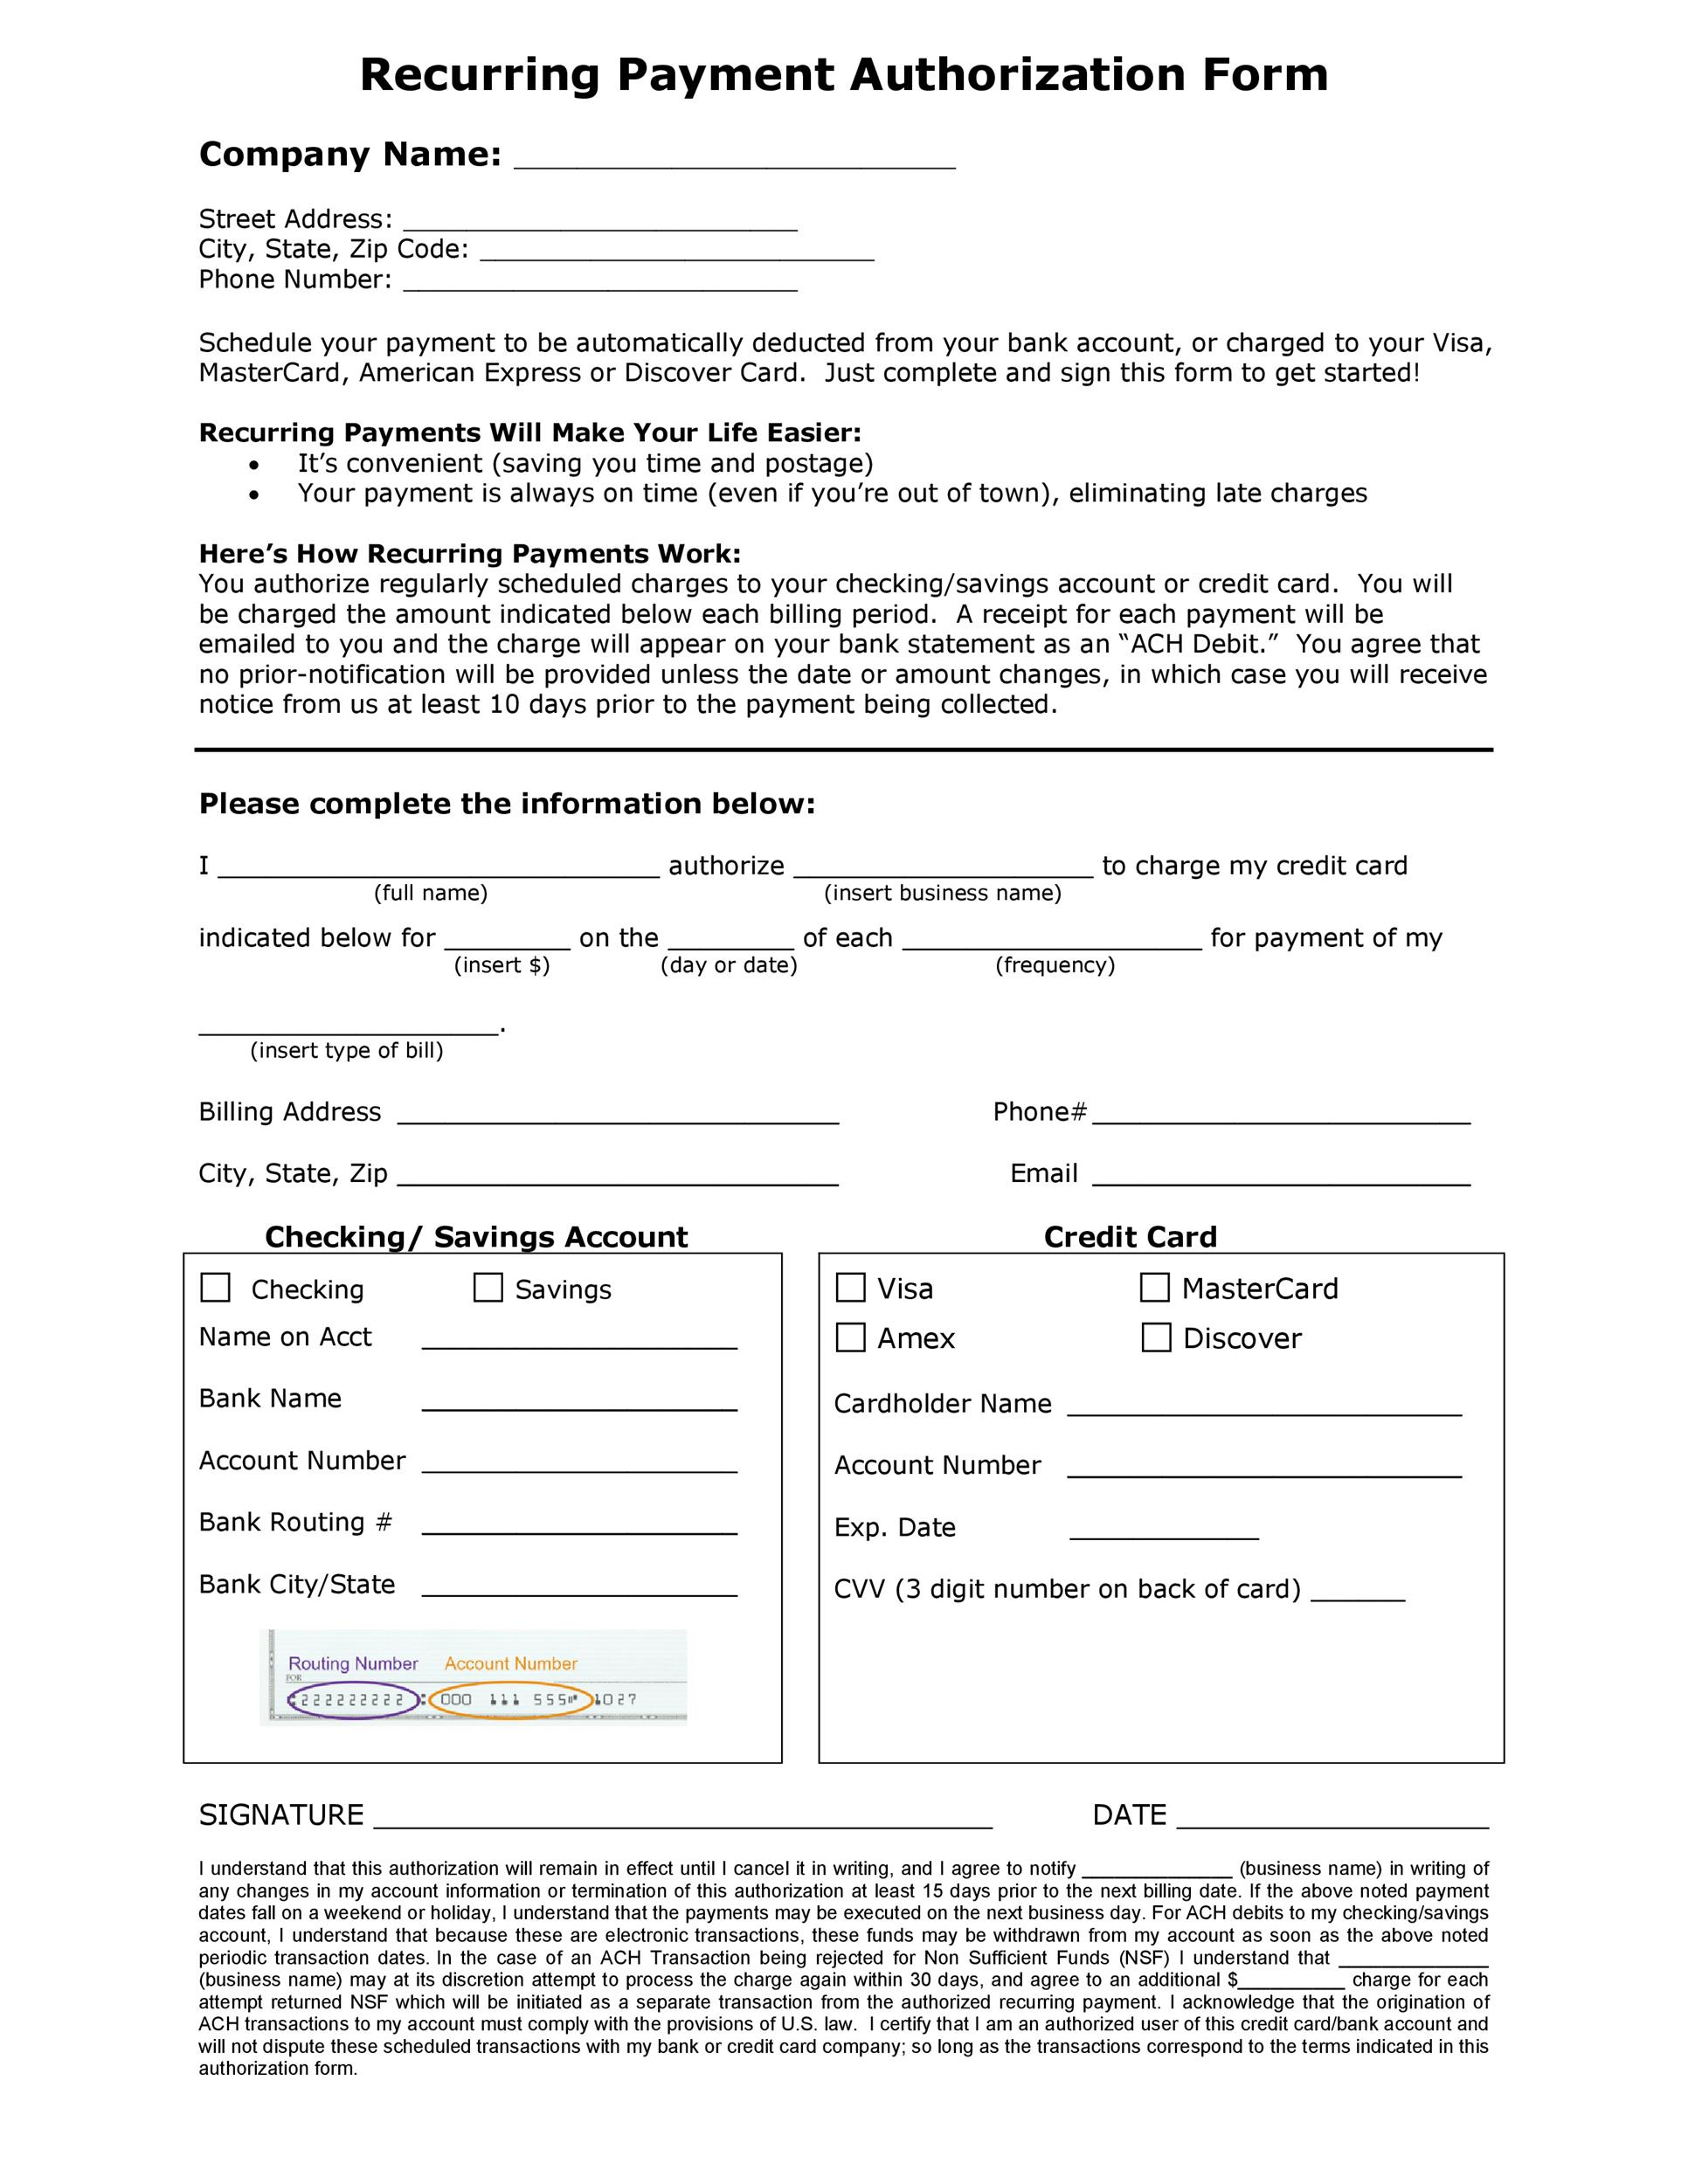 Free credit card authorization form template 32